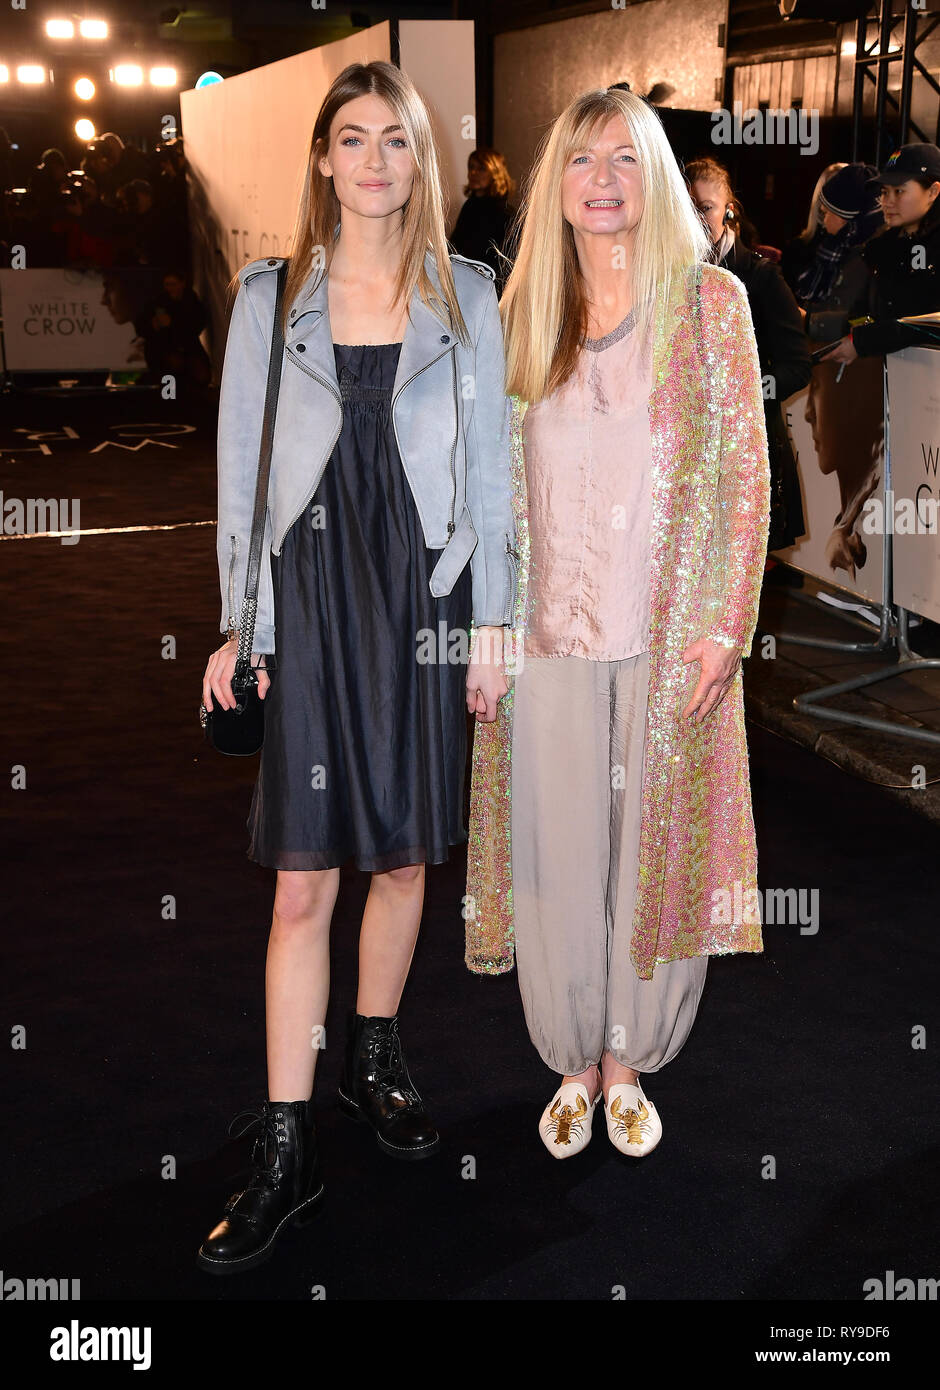 Eve Delf (left) attending The White Crow UK Premiere held at the Curzon Mayfair, London. - Stock Image